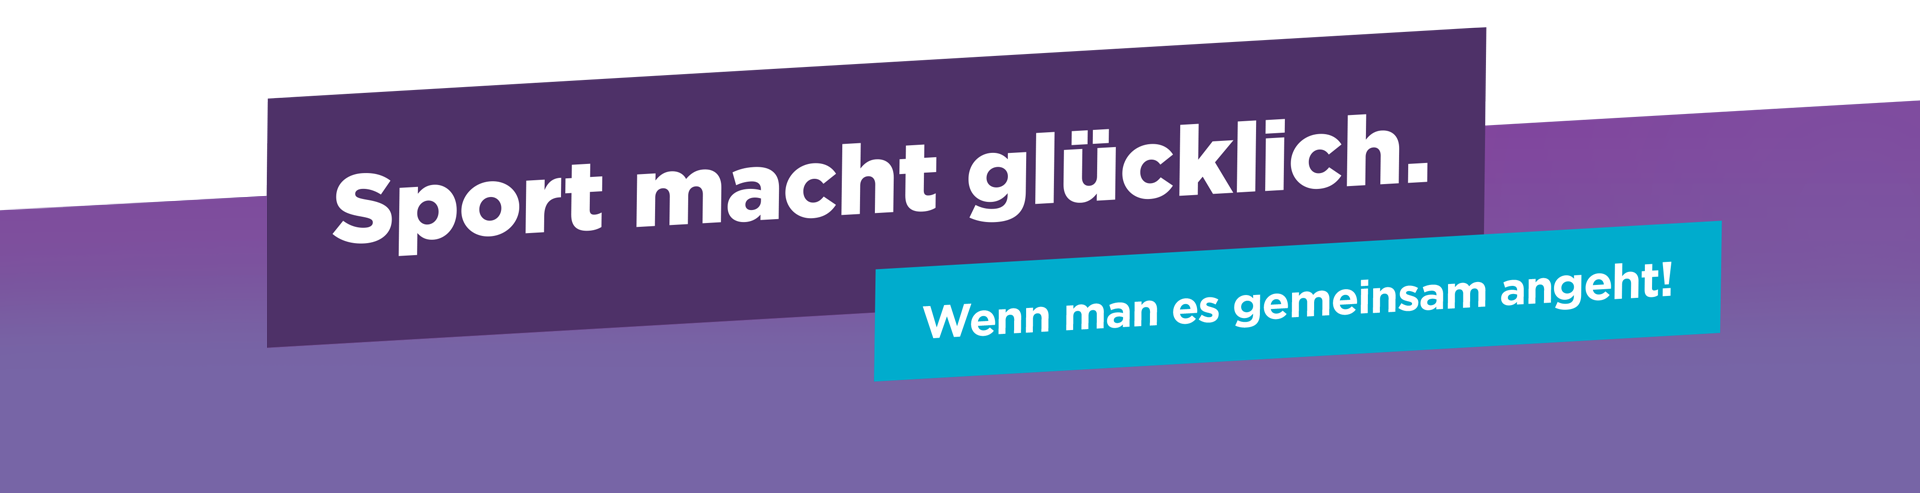 Anytime Fitness Sport Macht Glucklich Anytime Fitness